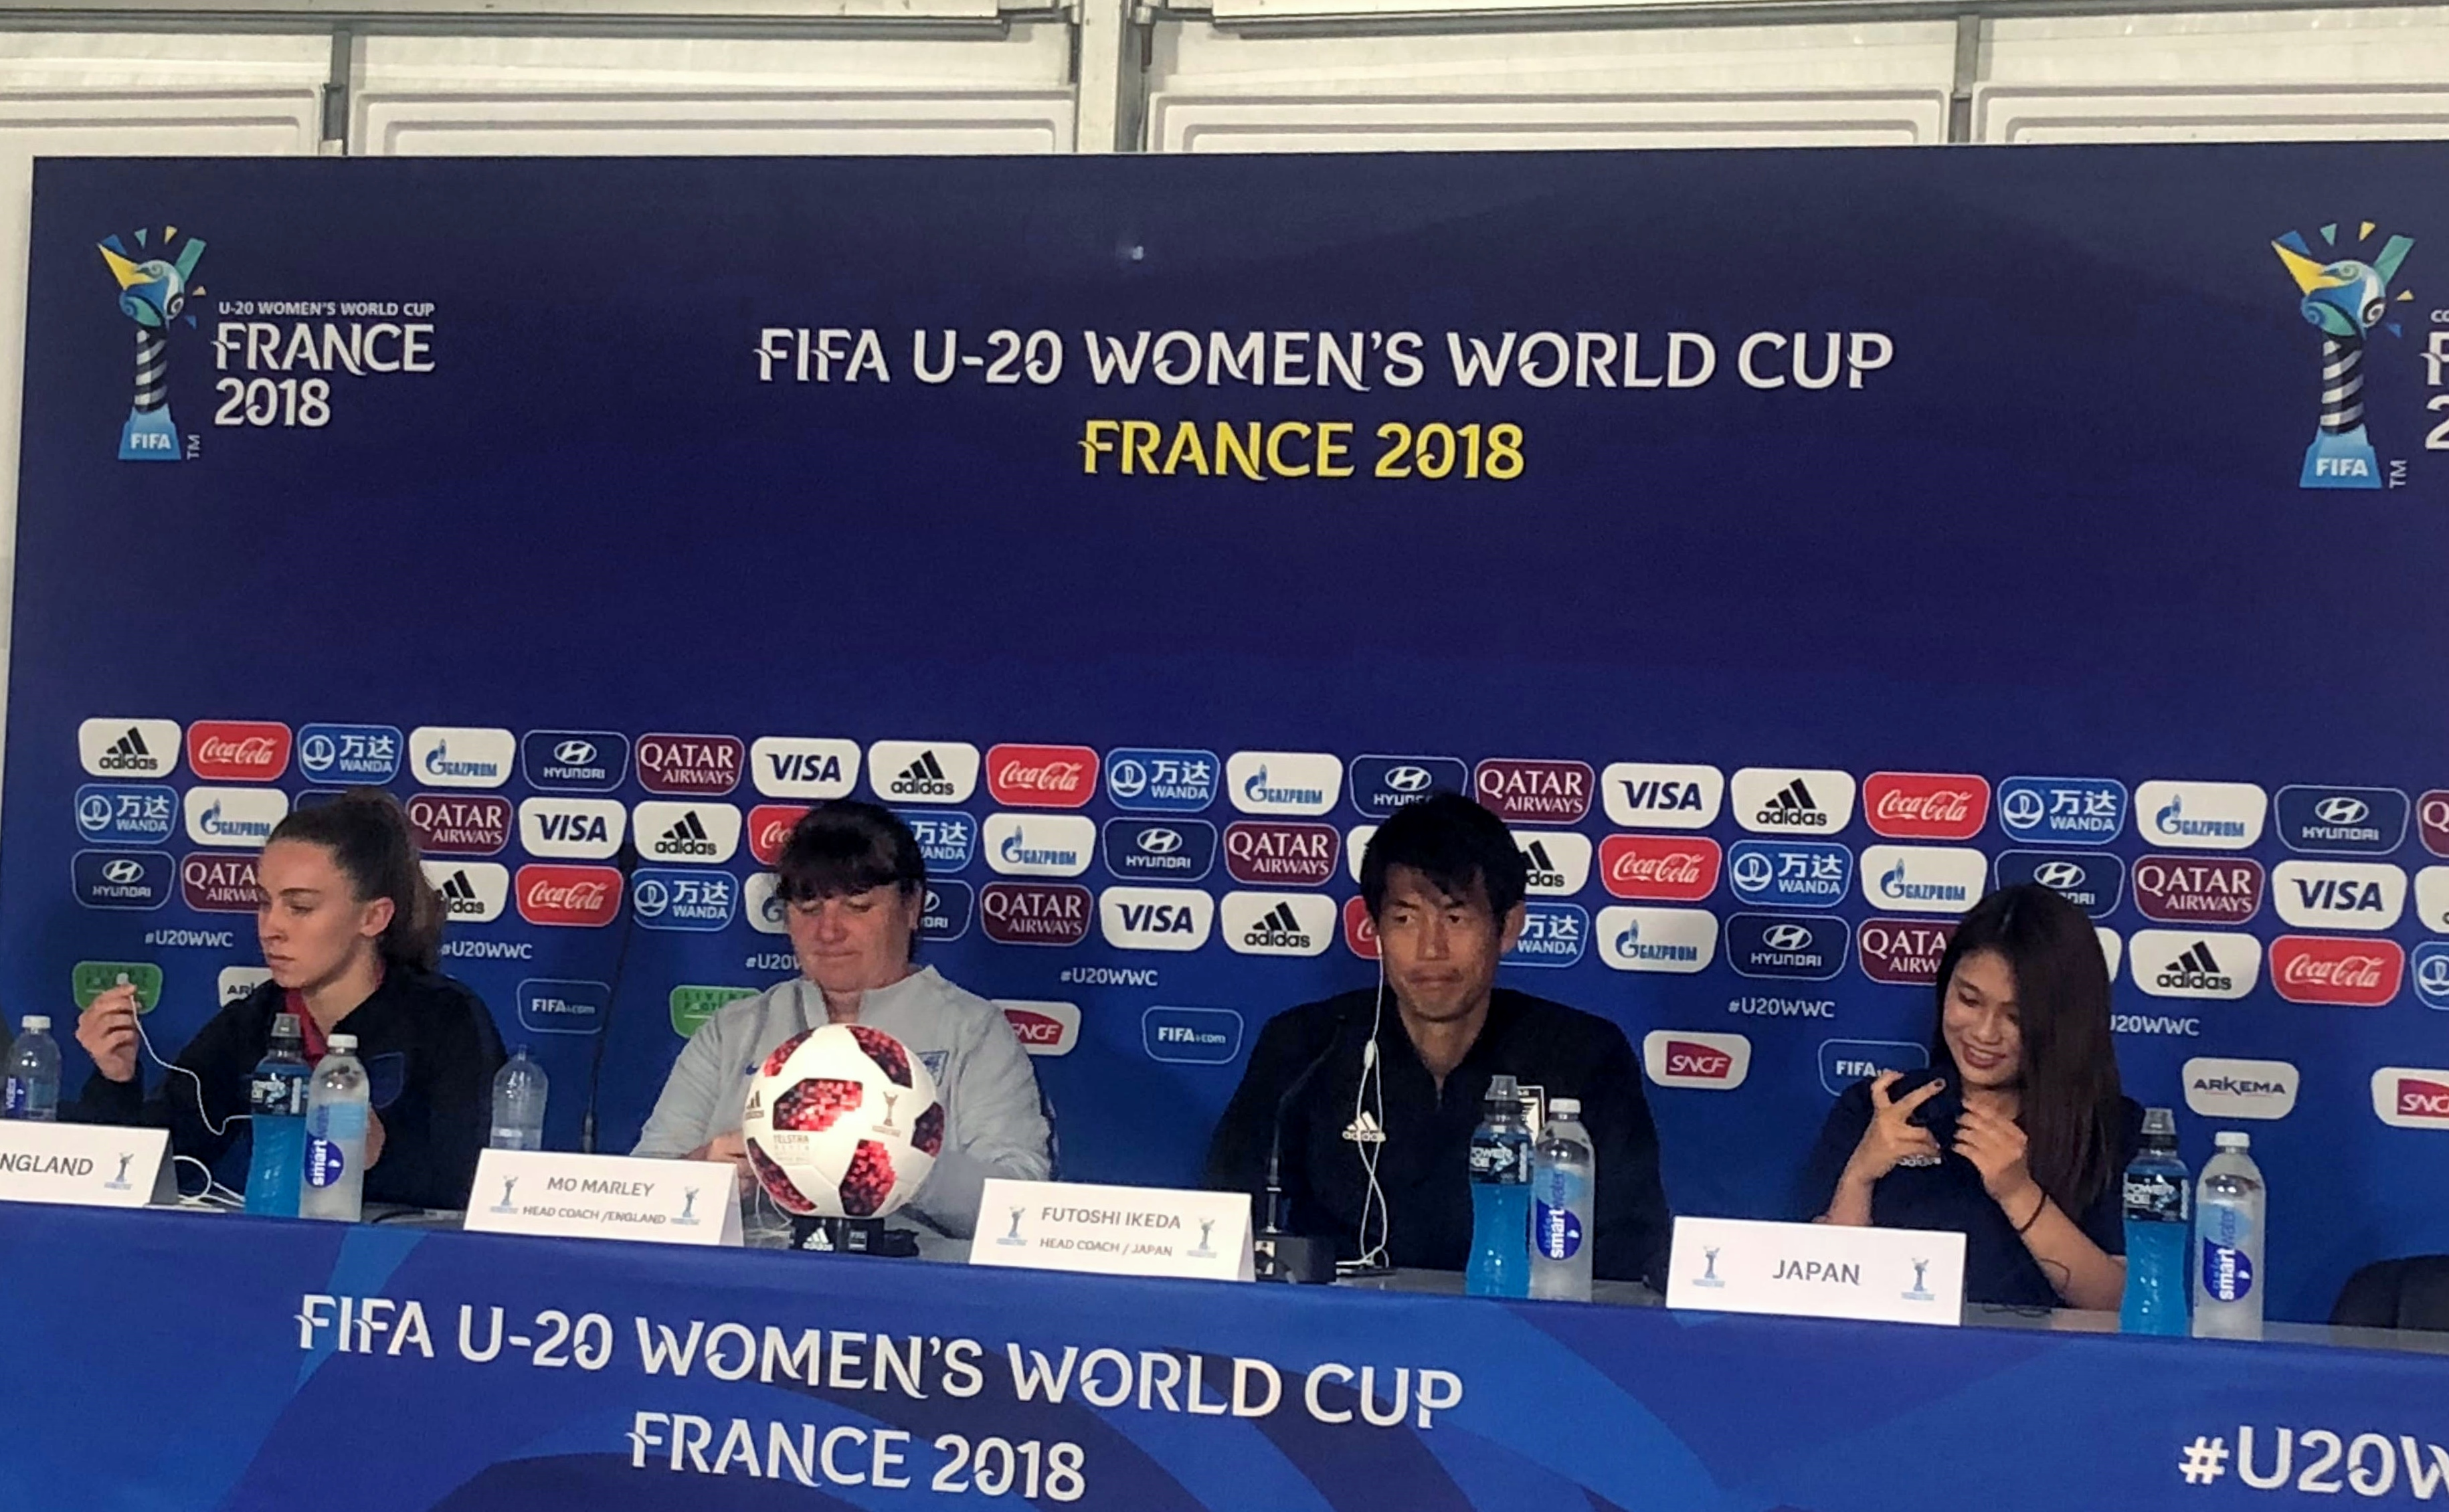 England / Japan (pre-match): Press conference of both teams